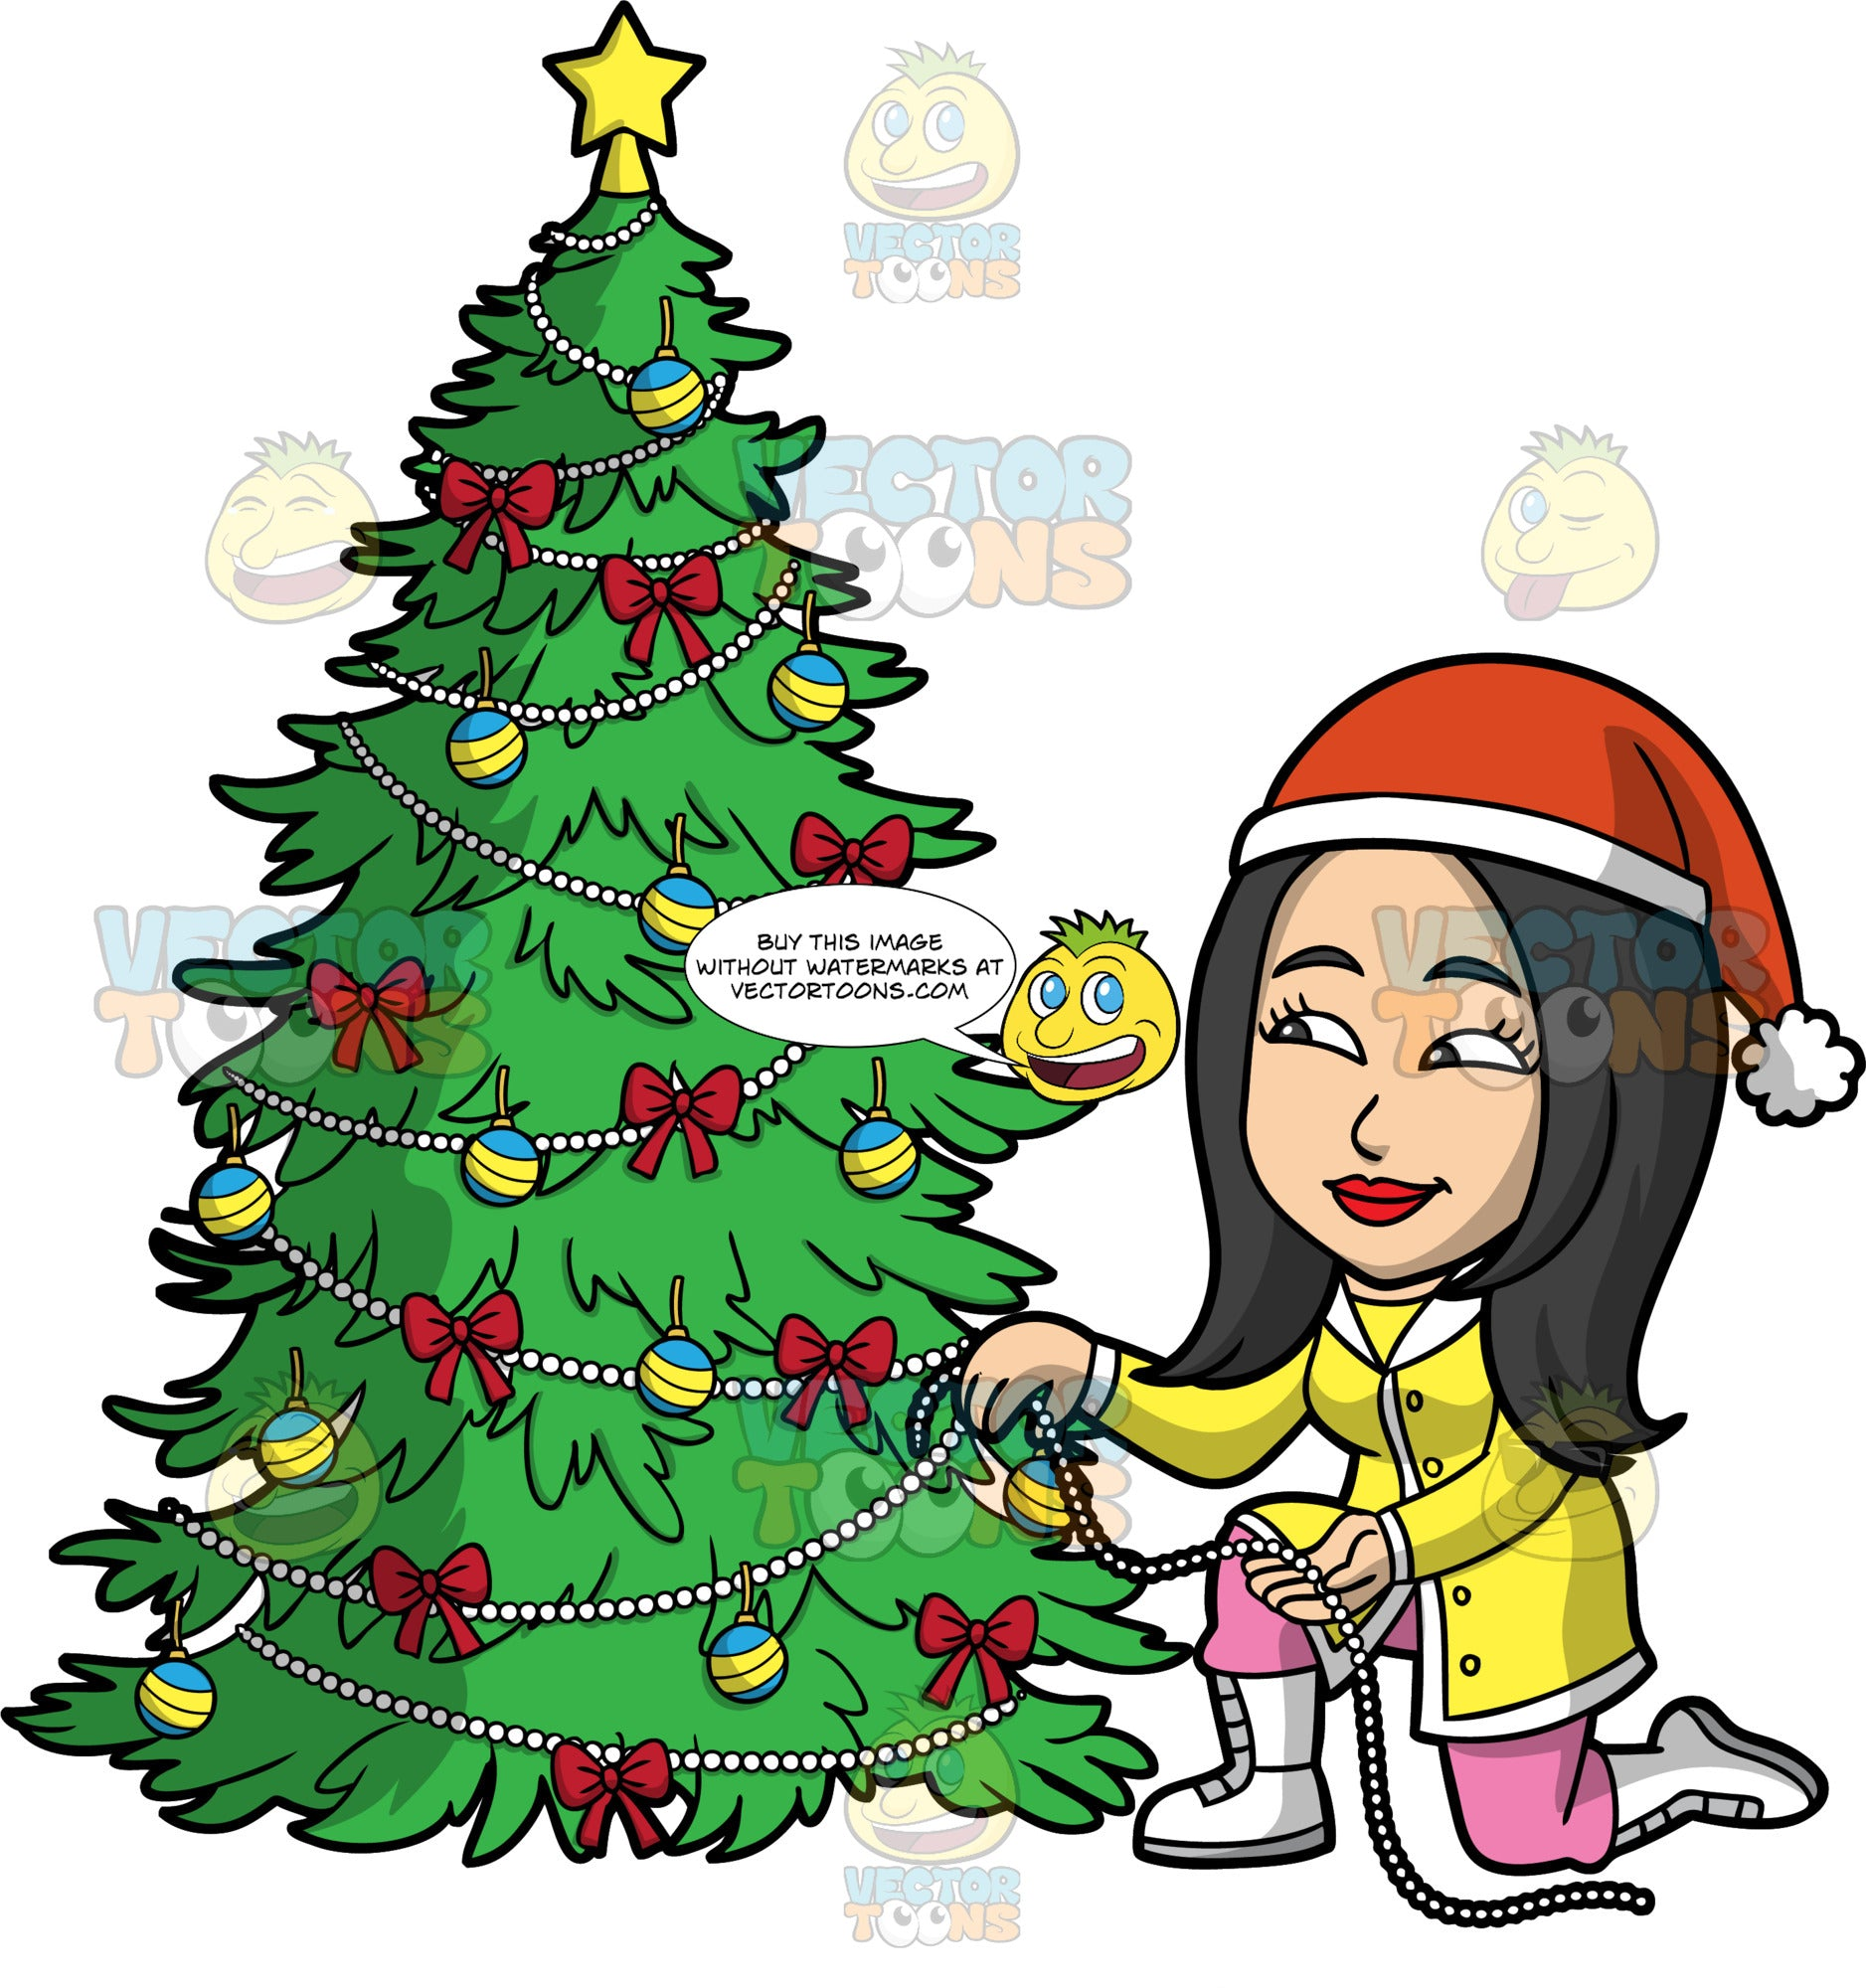 Connie Trimming A Christmas Tree. An Asian woman wearing pink pants, a yellow coat, white boots, and a Santa hat, kneeling down and wrapping decorative pearls around a Christmas tree